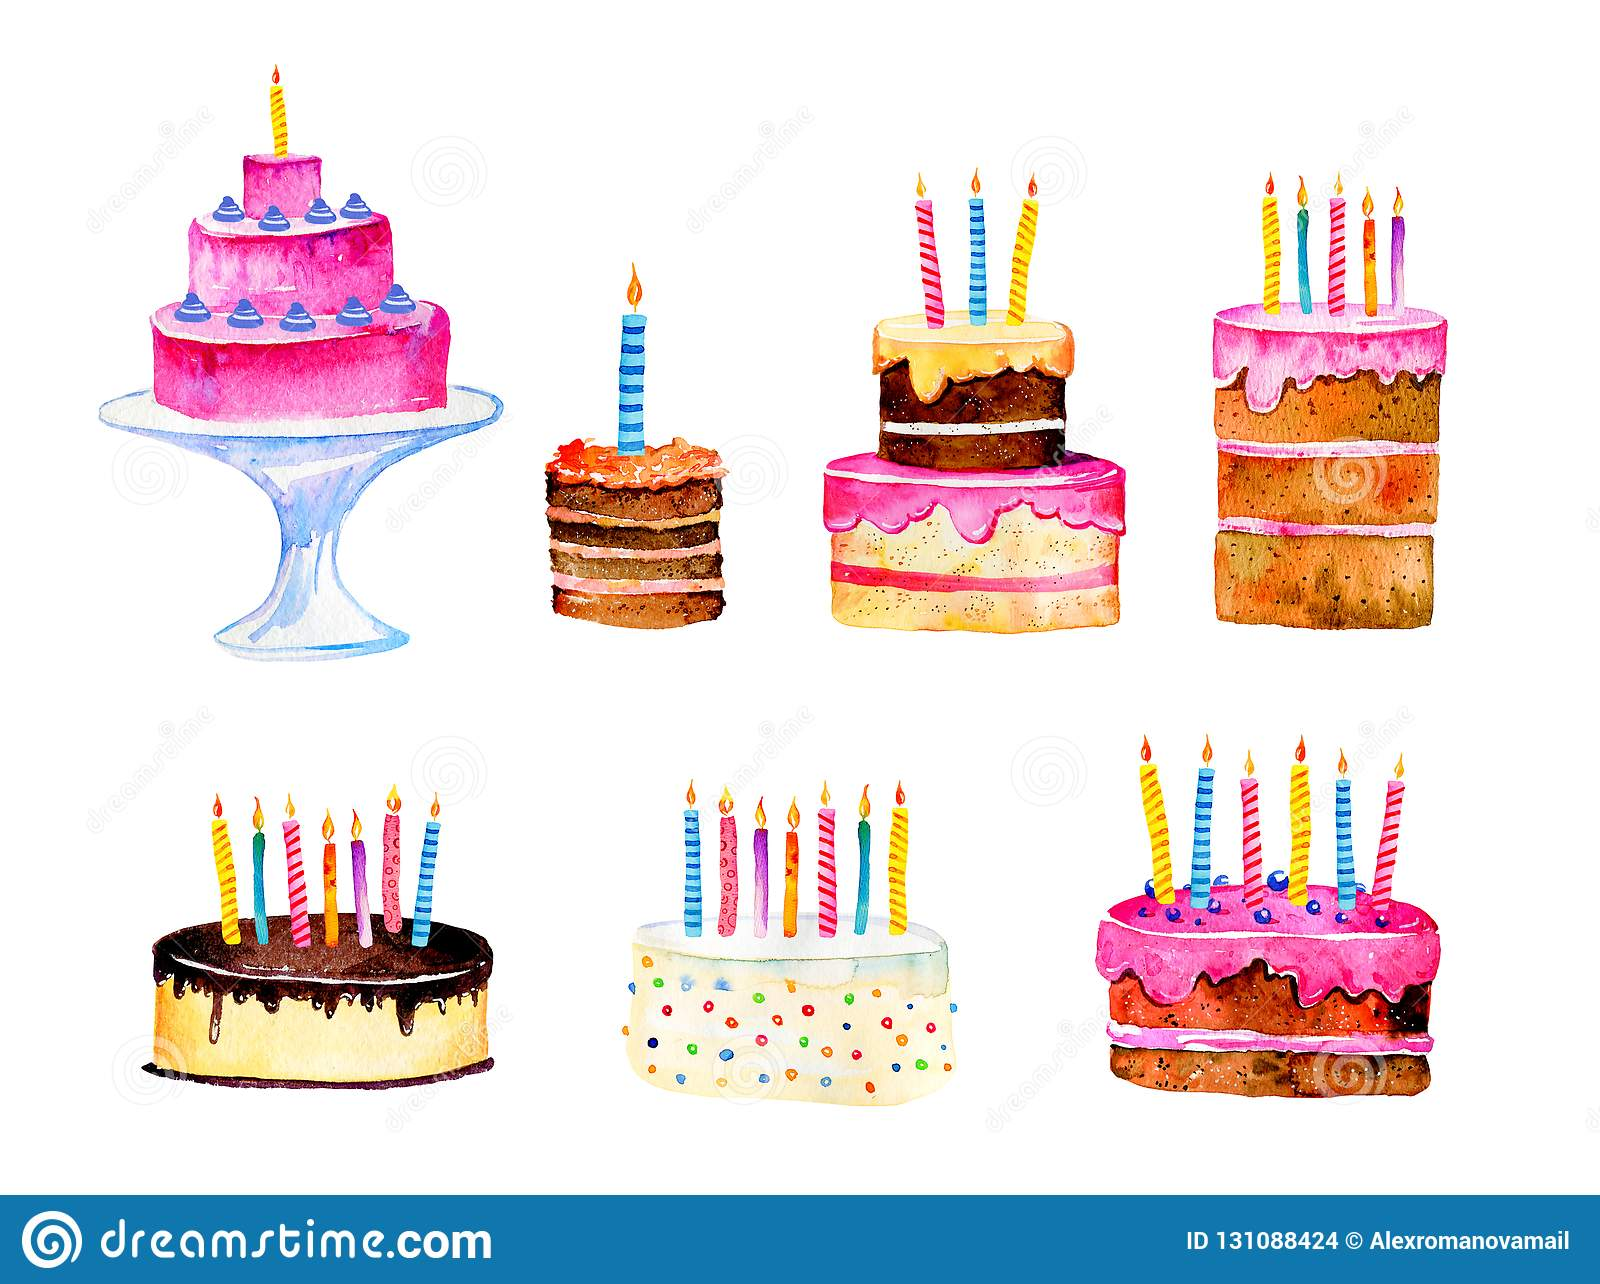 Set Of Stylized Birthday Cakes With Candles Hand Drawn Cartoon Watercolor Sketch Illustration Isolated On White Background